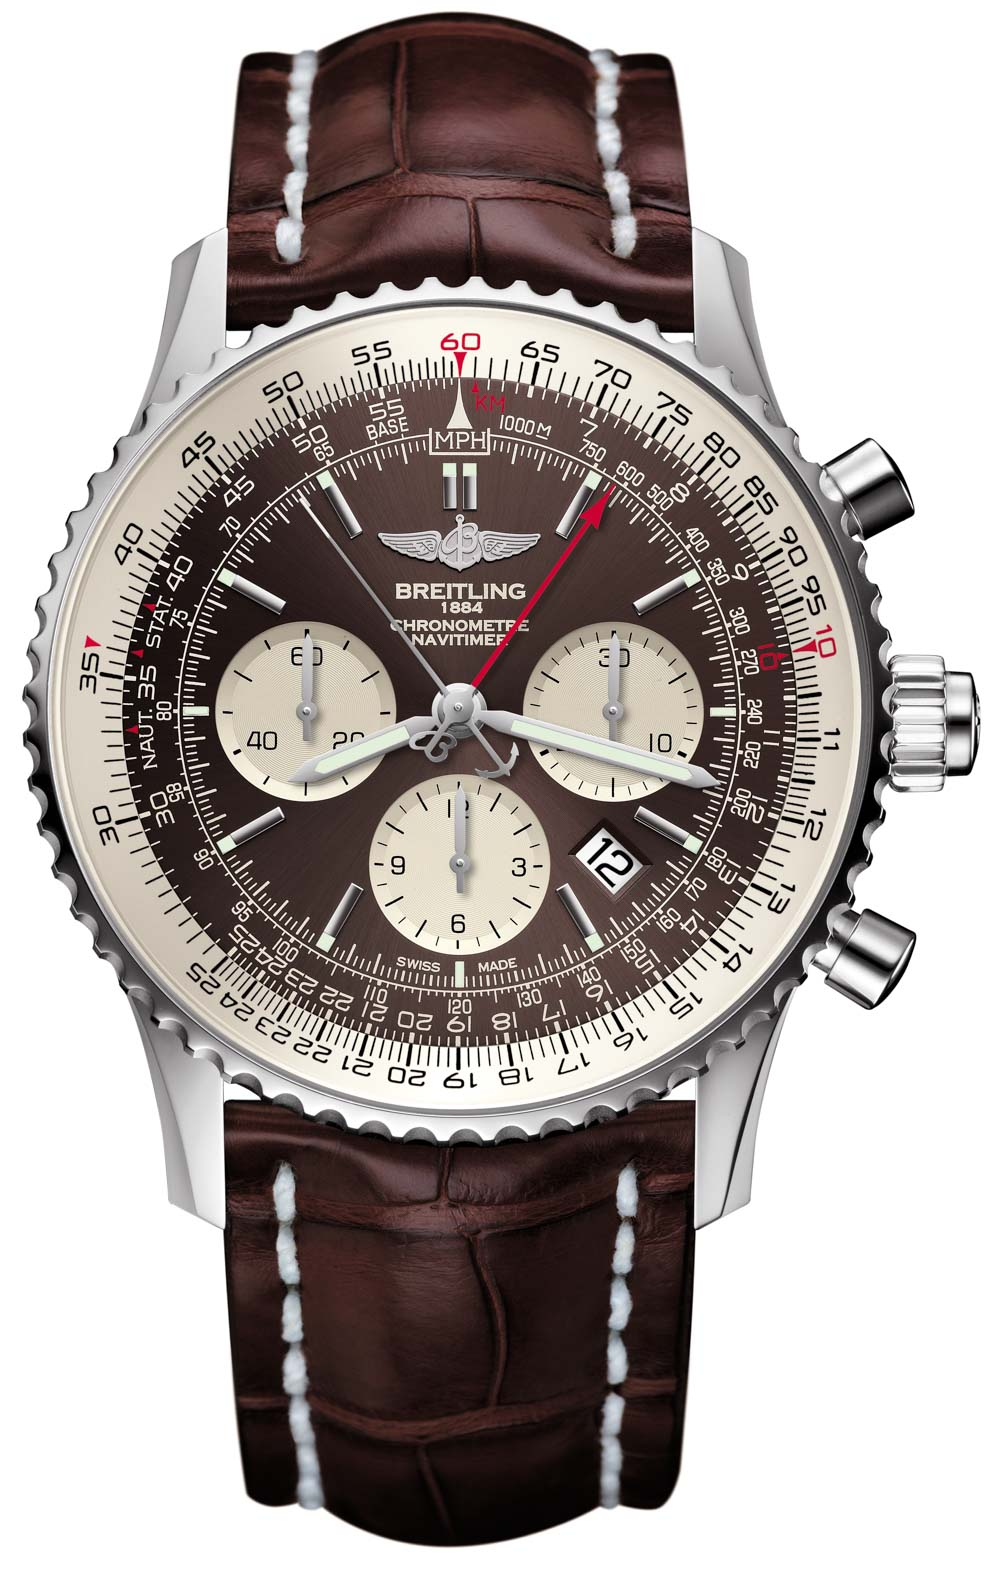 Breitling-Navitimer-Rattrapante-watch-3